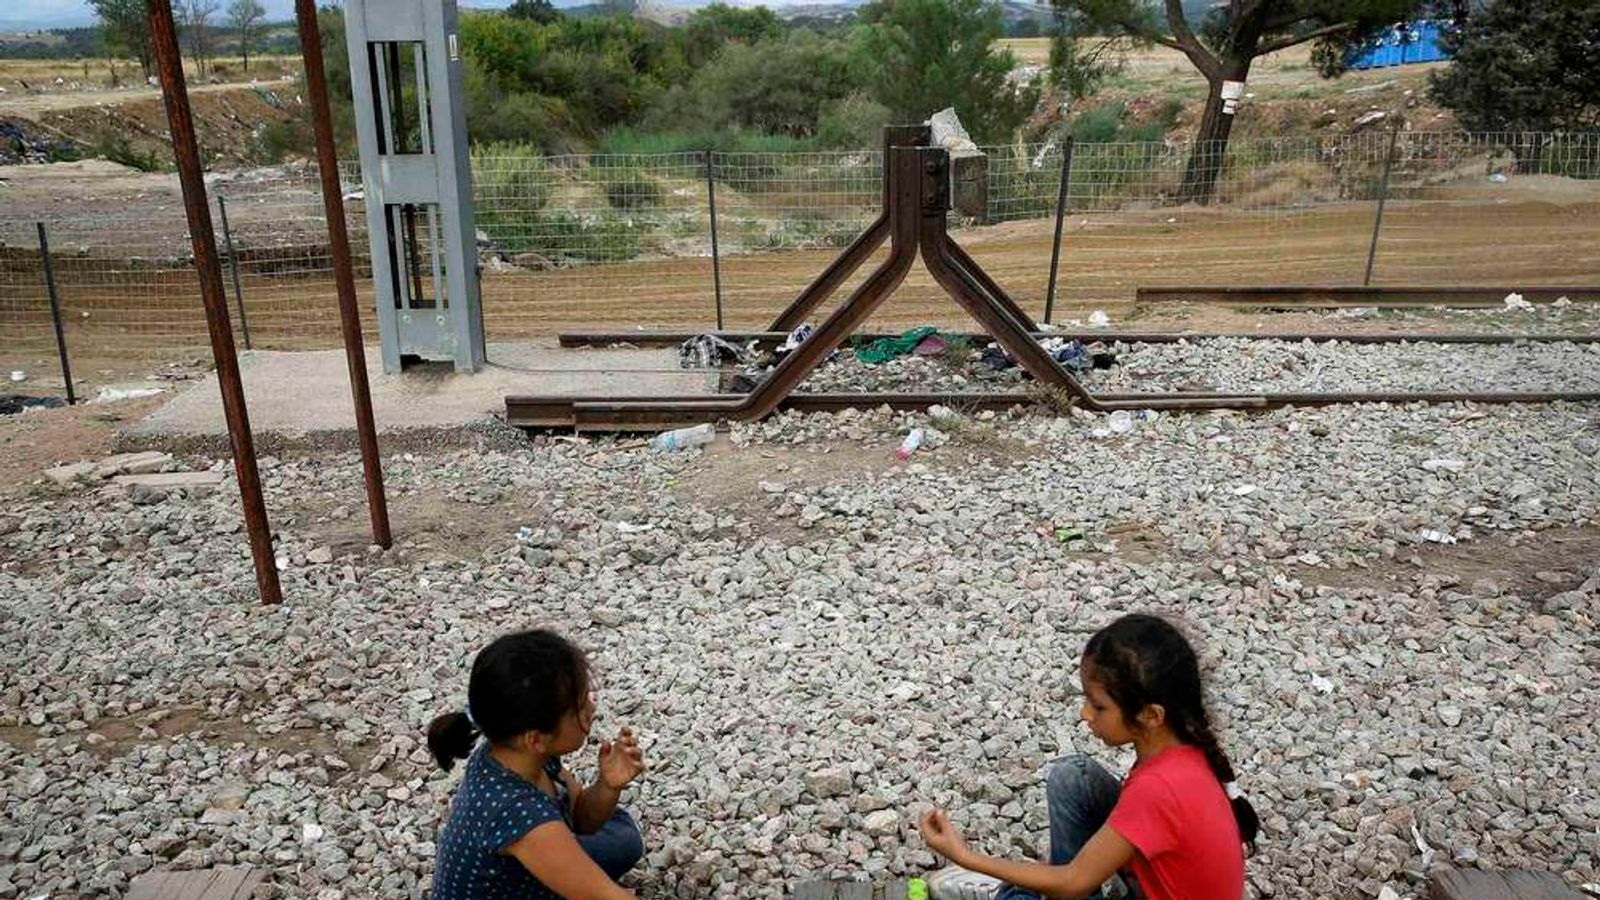 Syrian refugees play by rail tracks near Greece's border with Macedonia